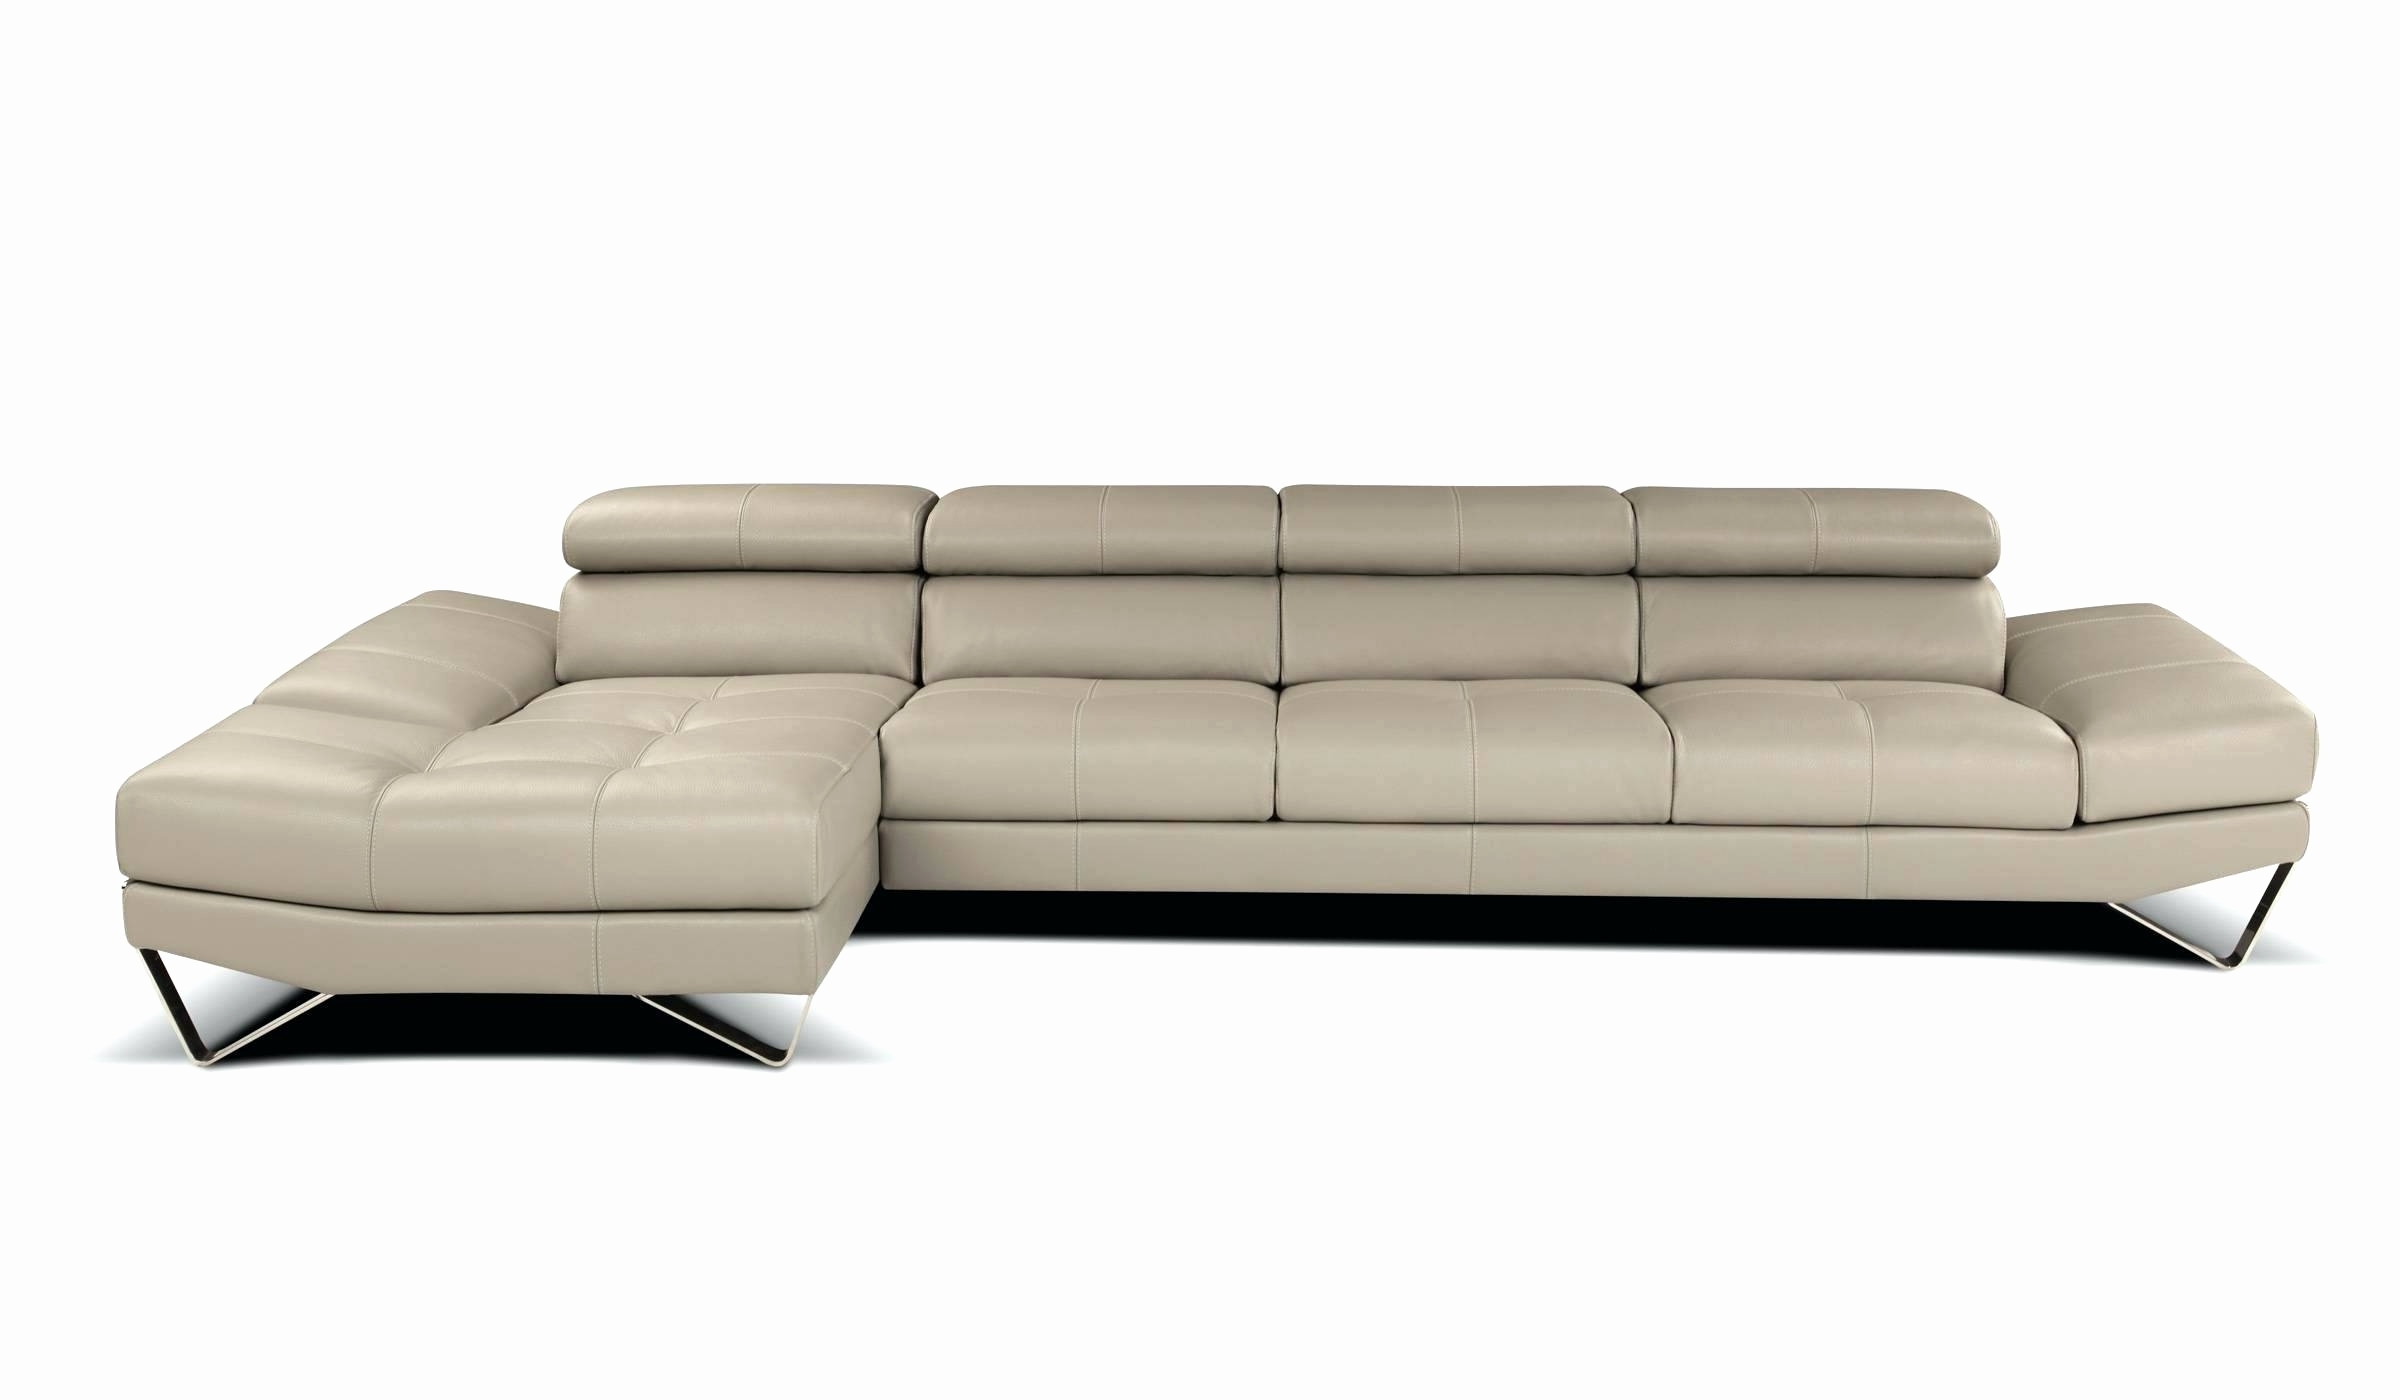 New Ashley Furniture Bailey Sofa 2018 – Couches And Sofas Ideas Regarding Current Circa Sofa Chaises (View 10 of 15)